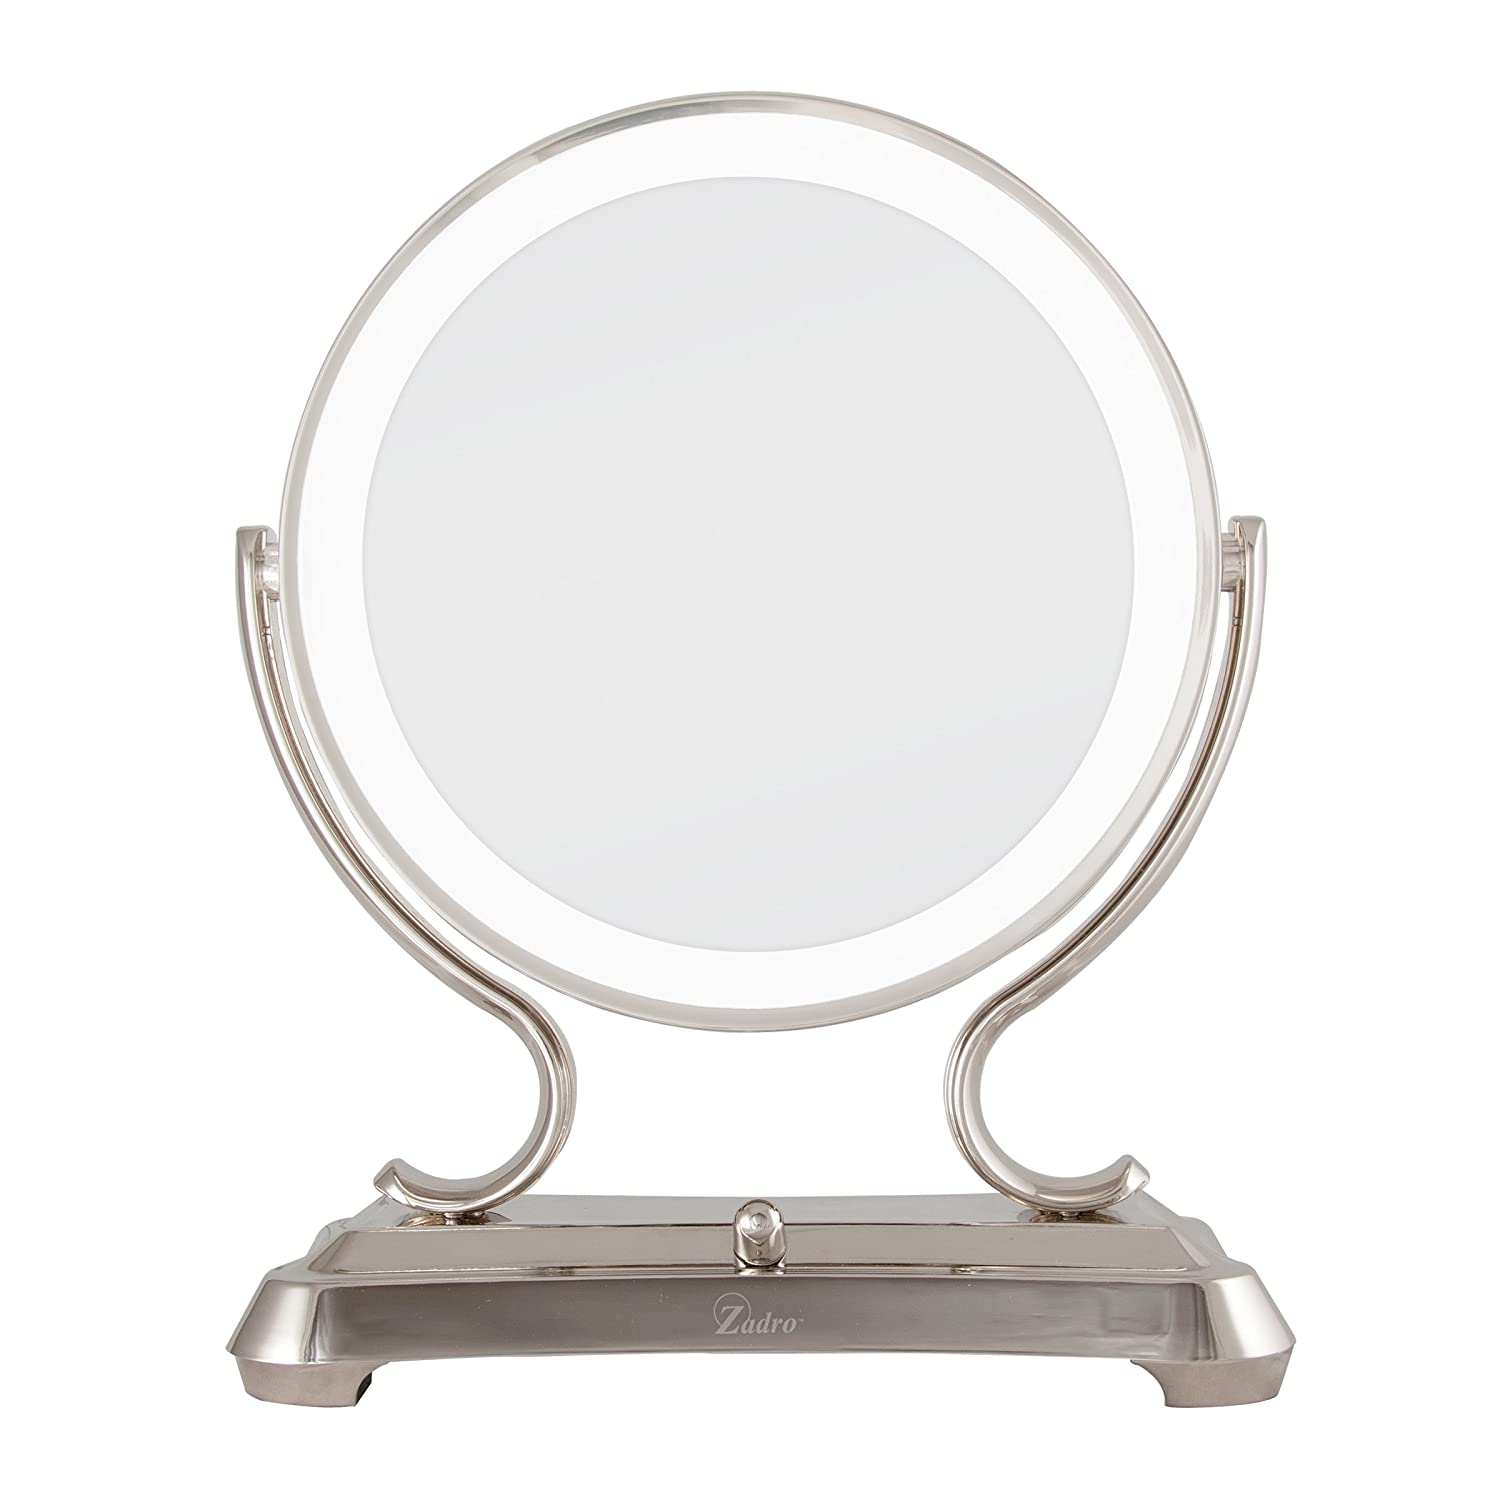 wall vanity xplrvr mirror makeup led fascinating com lighted mounted amazon